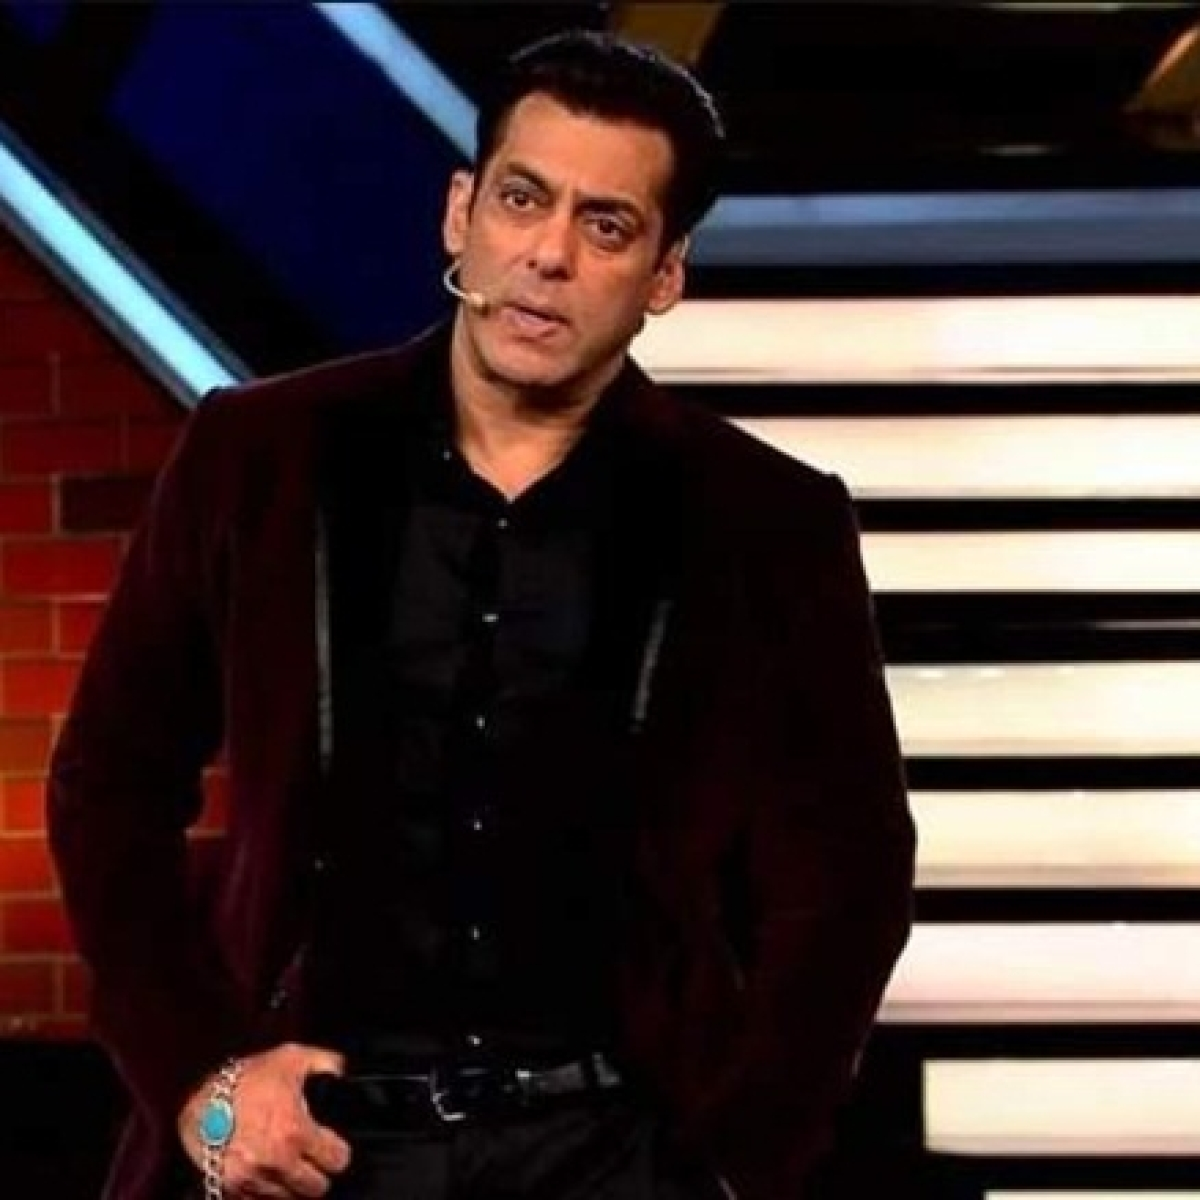 Salman Khan to start shooting for 'Bigg Boss 14' in September; Adhyayan Suman, Nia Sharma in talks as participants